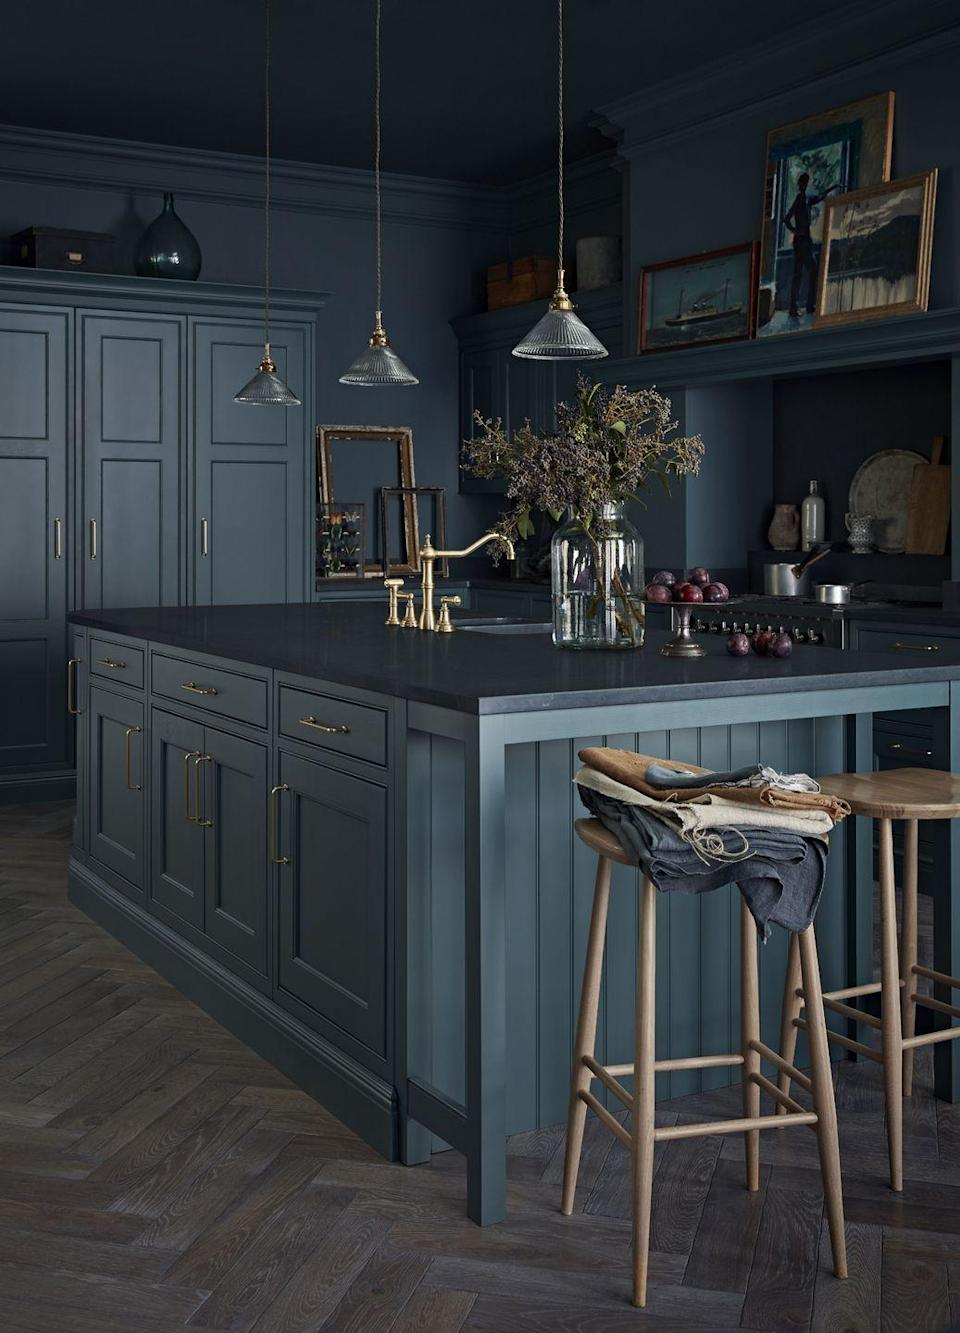 """<p>'Although a practical choice for kitchens, an island should be considered carefully before the final design is chosen,' explains Ben Burbidge, Managing Director at Burbridge Kitchen Makers. </p><p>'You should look to maximise the internal and worktop space but don't be tempted to make the overall dimensions too big as it could dominate or restrict movement around the kitchen. If you want to include appliances or sinks make sure you can accommodate the required plumbing or electrics.'</p><p>• 'Somerton' kitchen in baltic green and brushed brass from <a href=""""https://burbidgekitchenmakers.co.uk/"""" rel=""""nofollow noopener"""" target=""""_blank"""" data-ylk=""""slk:Burbridge Kitchen Makers"""" class=""""link rapid-noclick-resp"""">Burbridge Kitchen Makers</a> </p>"""